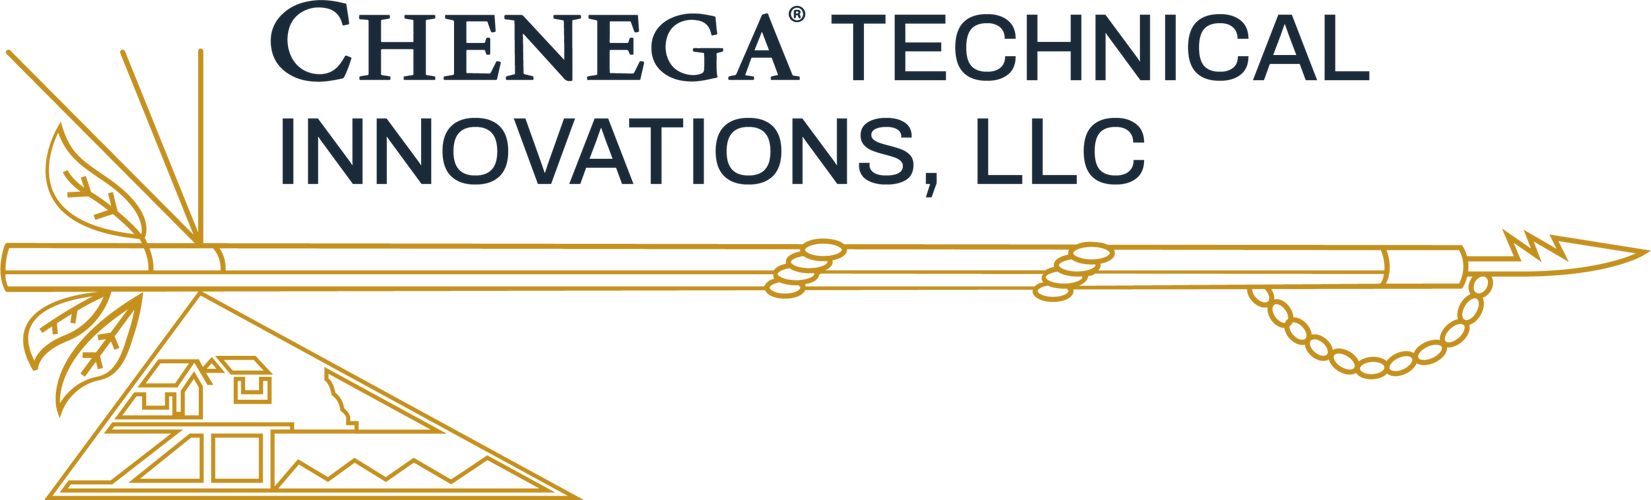 Chenega Technical Innovations